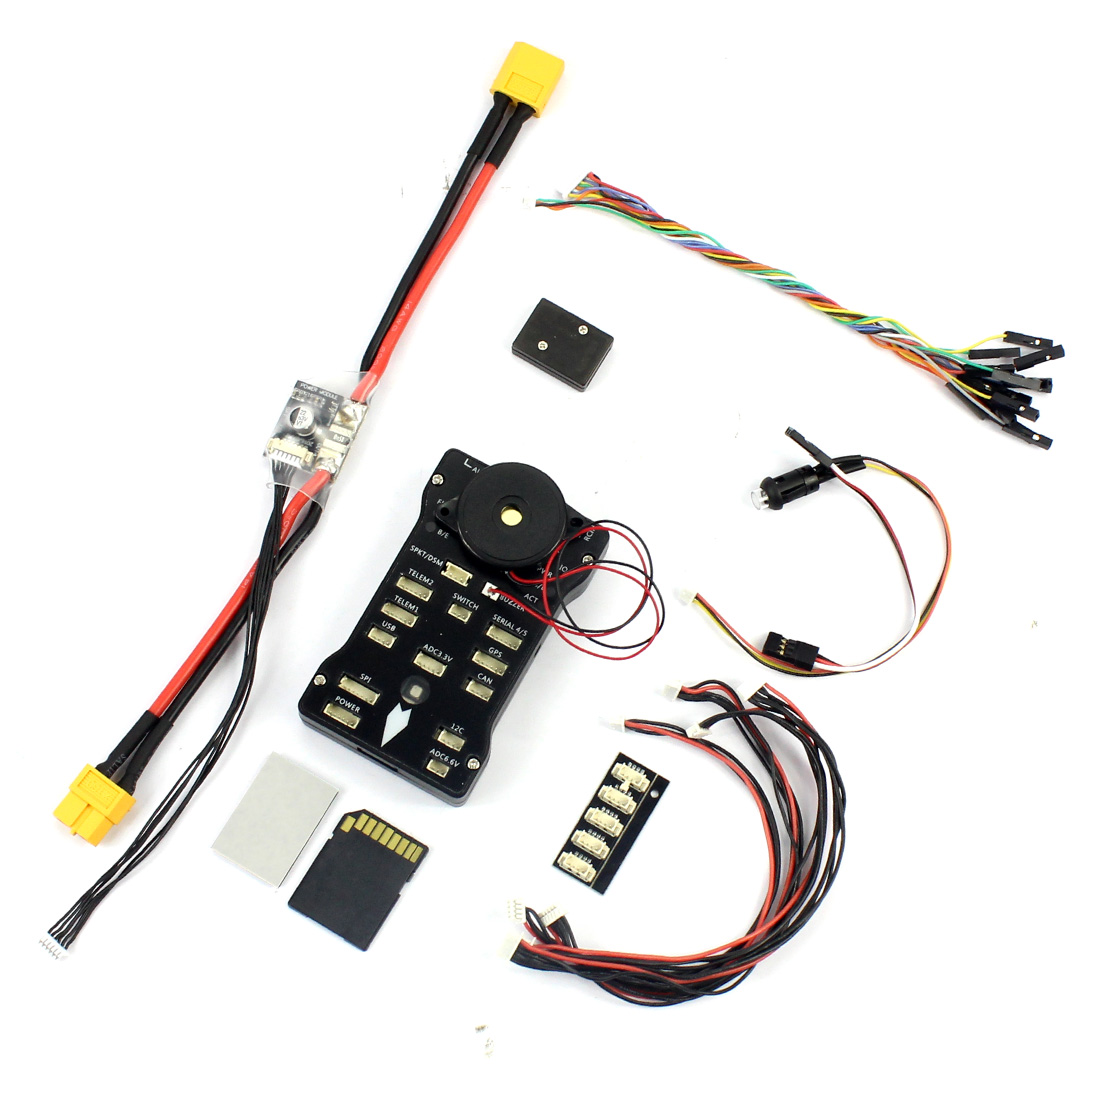 DIY FPV Drone Quadcopter 4-axle Aircraft Kit 450 Frame PXI PX4 Flight Control 920KV Motor GPS FS-i6 Transmitter Helicopter Toys 4